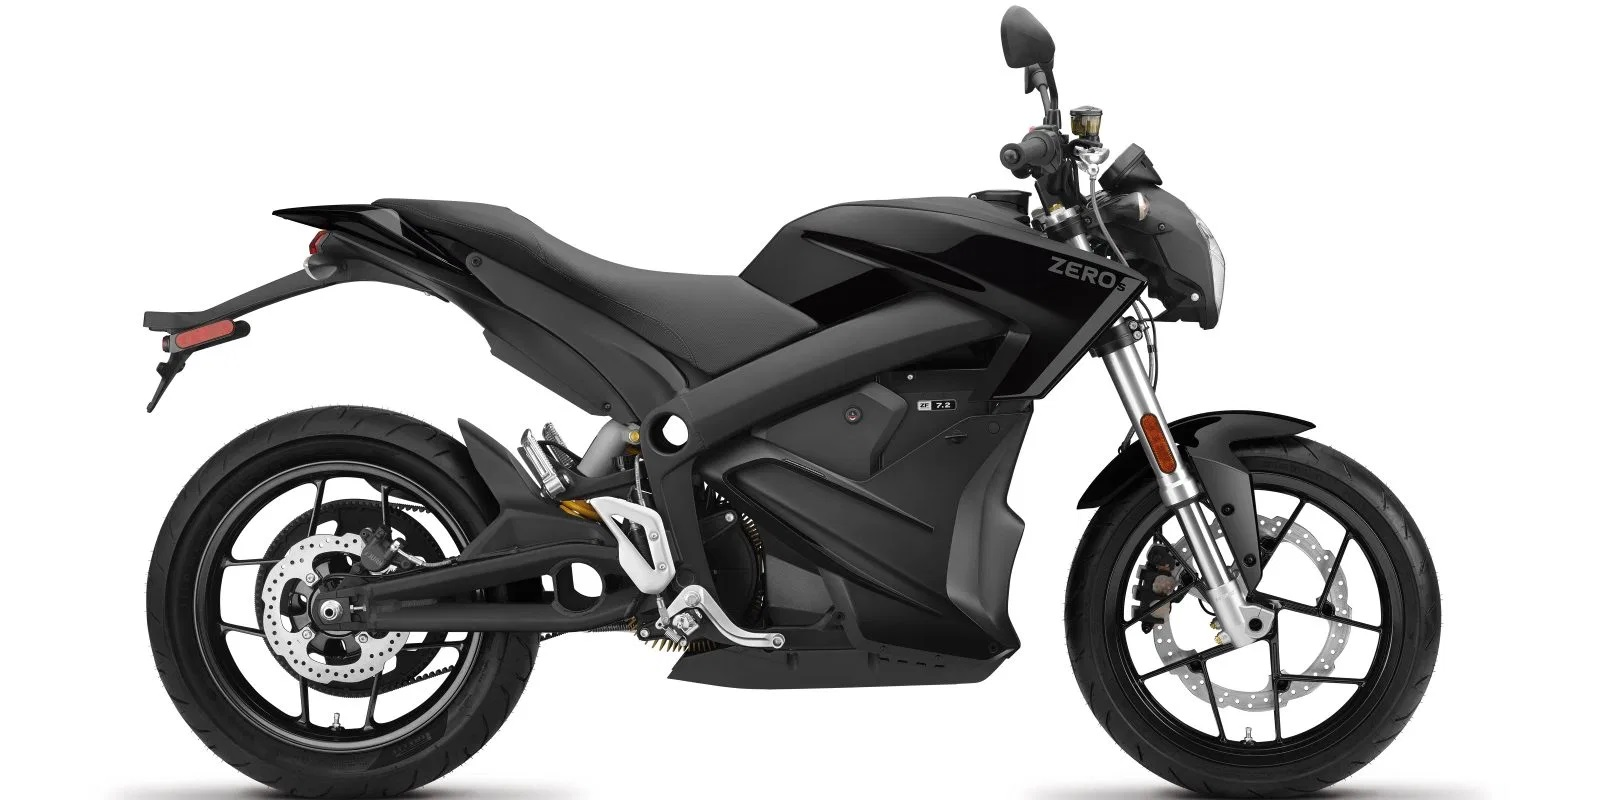 KTM Duke – A Common Sports Bike in India